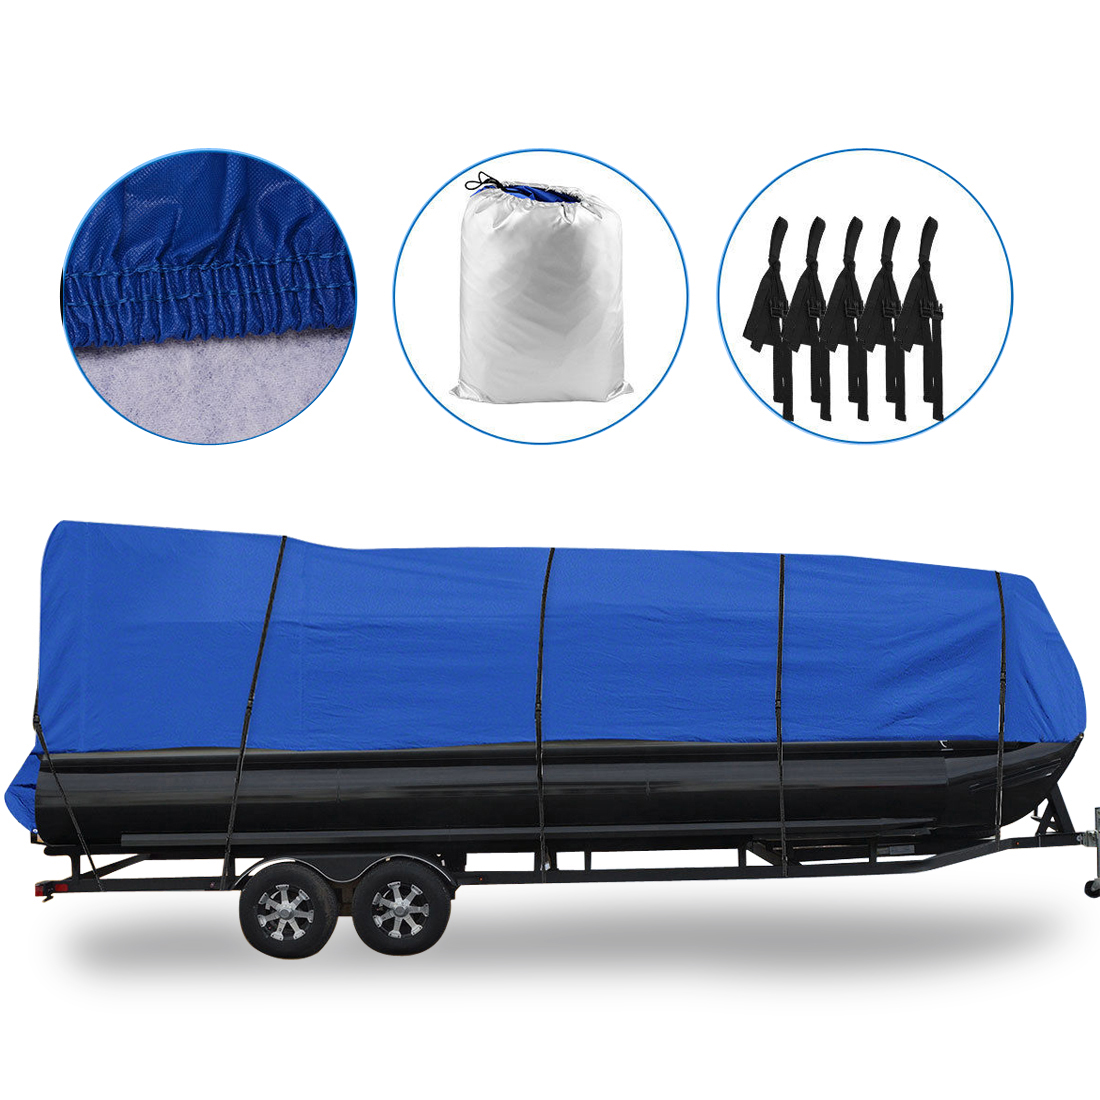 """Waterproof Boat Cover All Seasons Outdoor Protector Aluminium Film Composite Cotton Fits Quick Release Buckle Strap (Blue, Fit 21'-24'L x 102"""" Beam Width)"""